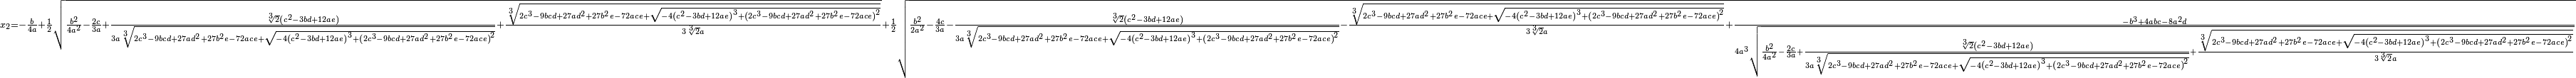 {}_{x_2=-\frac{b}{4a}+\frac{1}{2} \sqrt{\frac{b^2}{4a^2}-\frac{2c}{3a}+\frac{\sqrt[3]{2}\left(c^2-3bd+12ae\right)}{3a\sqrt[3]{2c^3-9bcd+27ad^2+27b^2e-72ace+\sqrt{-4\left(c^2-3bd+12ae\right)^3+\left(2c^3-9bcd+27ad^2+27b^2e-72ace\right)^2}}}+\frac{\sqrt[3]{2c^3-9bcd+27ad^2+27b^2e-72ace+\sqrt{-4\left(c^2-3bd+12ae\right)^3+\left(2c^3-9bcd+27ad^2+27b^2e-72ace\right)^2}}}{3\sqrt[3]{2}a}}+\frac{1}{2} \sqrt{\frac{b^2}{2a^2}-\frac{4c}{3a}-\frac{\sqrt[3]{2}\left(c^2-3bd+12ae\right)}{3a\sqrt[3]{2c^3-9bcd+27ad^2+27b^2e-72ace+\sqrt{-4\left(c^2-3bd+12ae\right)^3+\left(2c^3-9bcd+27ad^2+27b^2e-72ace\right)^2}}}-\frac{\sqrt[3]{2c^3-9bcd+27ad^2+27b^2e-72ace+\sqrt{-4\left(c^2-3bd+12ae\right)^3+\left(2c^3-9bcd+27ad^2+27b^2e-72ace\right)^2}}}{3\sqrt[3]{2}a}+\frac{-b^3+4abc-8a^2d}{4a^3\sqrt{\frac{b^2}{4a^2}-\frac{2c}{3a}+\frac{\sqrt[3]{2}\left(c^2-3bd+12ae\right)}{3a\sqrt[3]{2c^3-9bcd+27ad^2+27b^2e-72ace+\sqrt{-4\left(c^2-3bd+12ae\right)^3+\left(2c^3-9bcd+27ad^2+27b^2e-72ace\right)^2}}}+\frac{\sqrt[3]{2c^3-9bcd+27ad^2+27b^2e-72ace+\sqrt{-4\left(c^2-3bd+12ae\right)^3+\left(2c^3-9bcd+27ad^2+27b^2e-72ace\right)^2}}} {3\sqrt[3]{2}a}}}}}